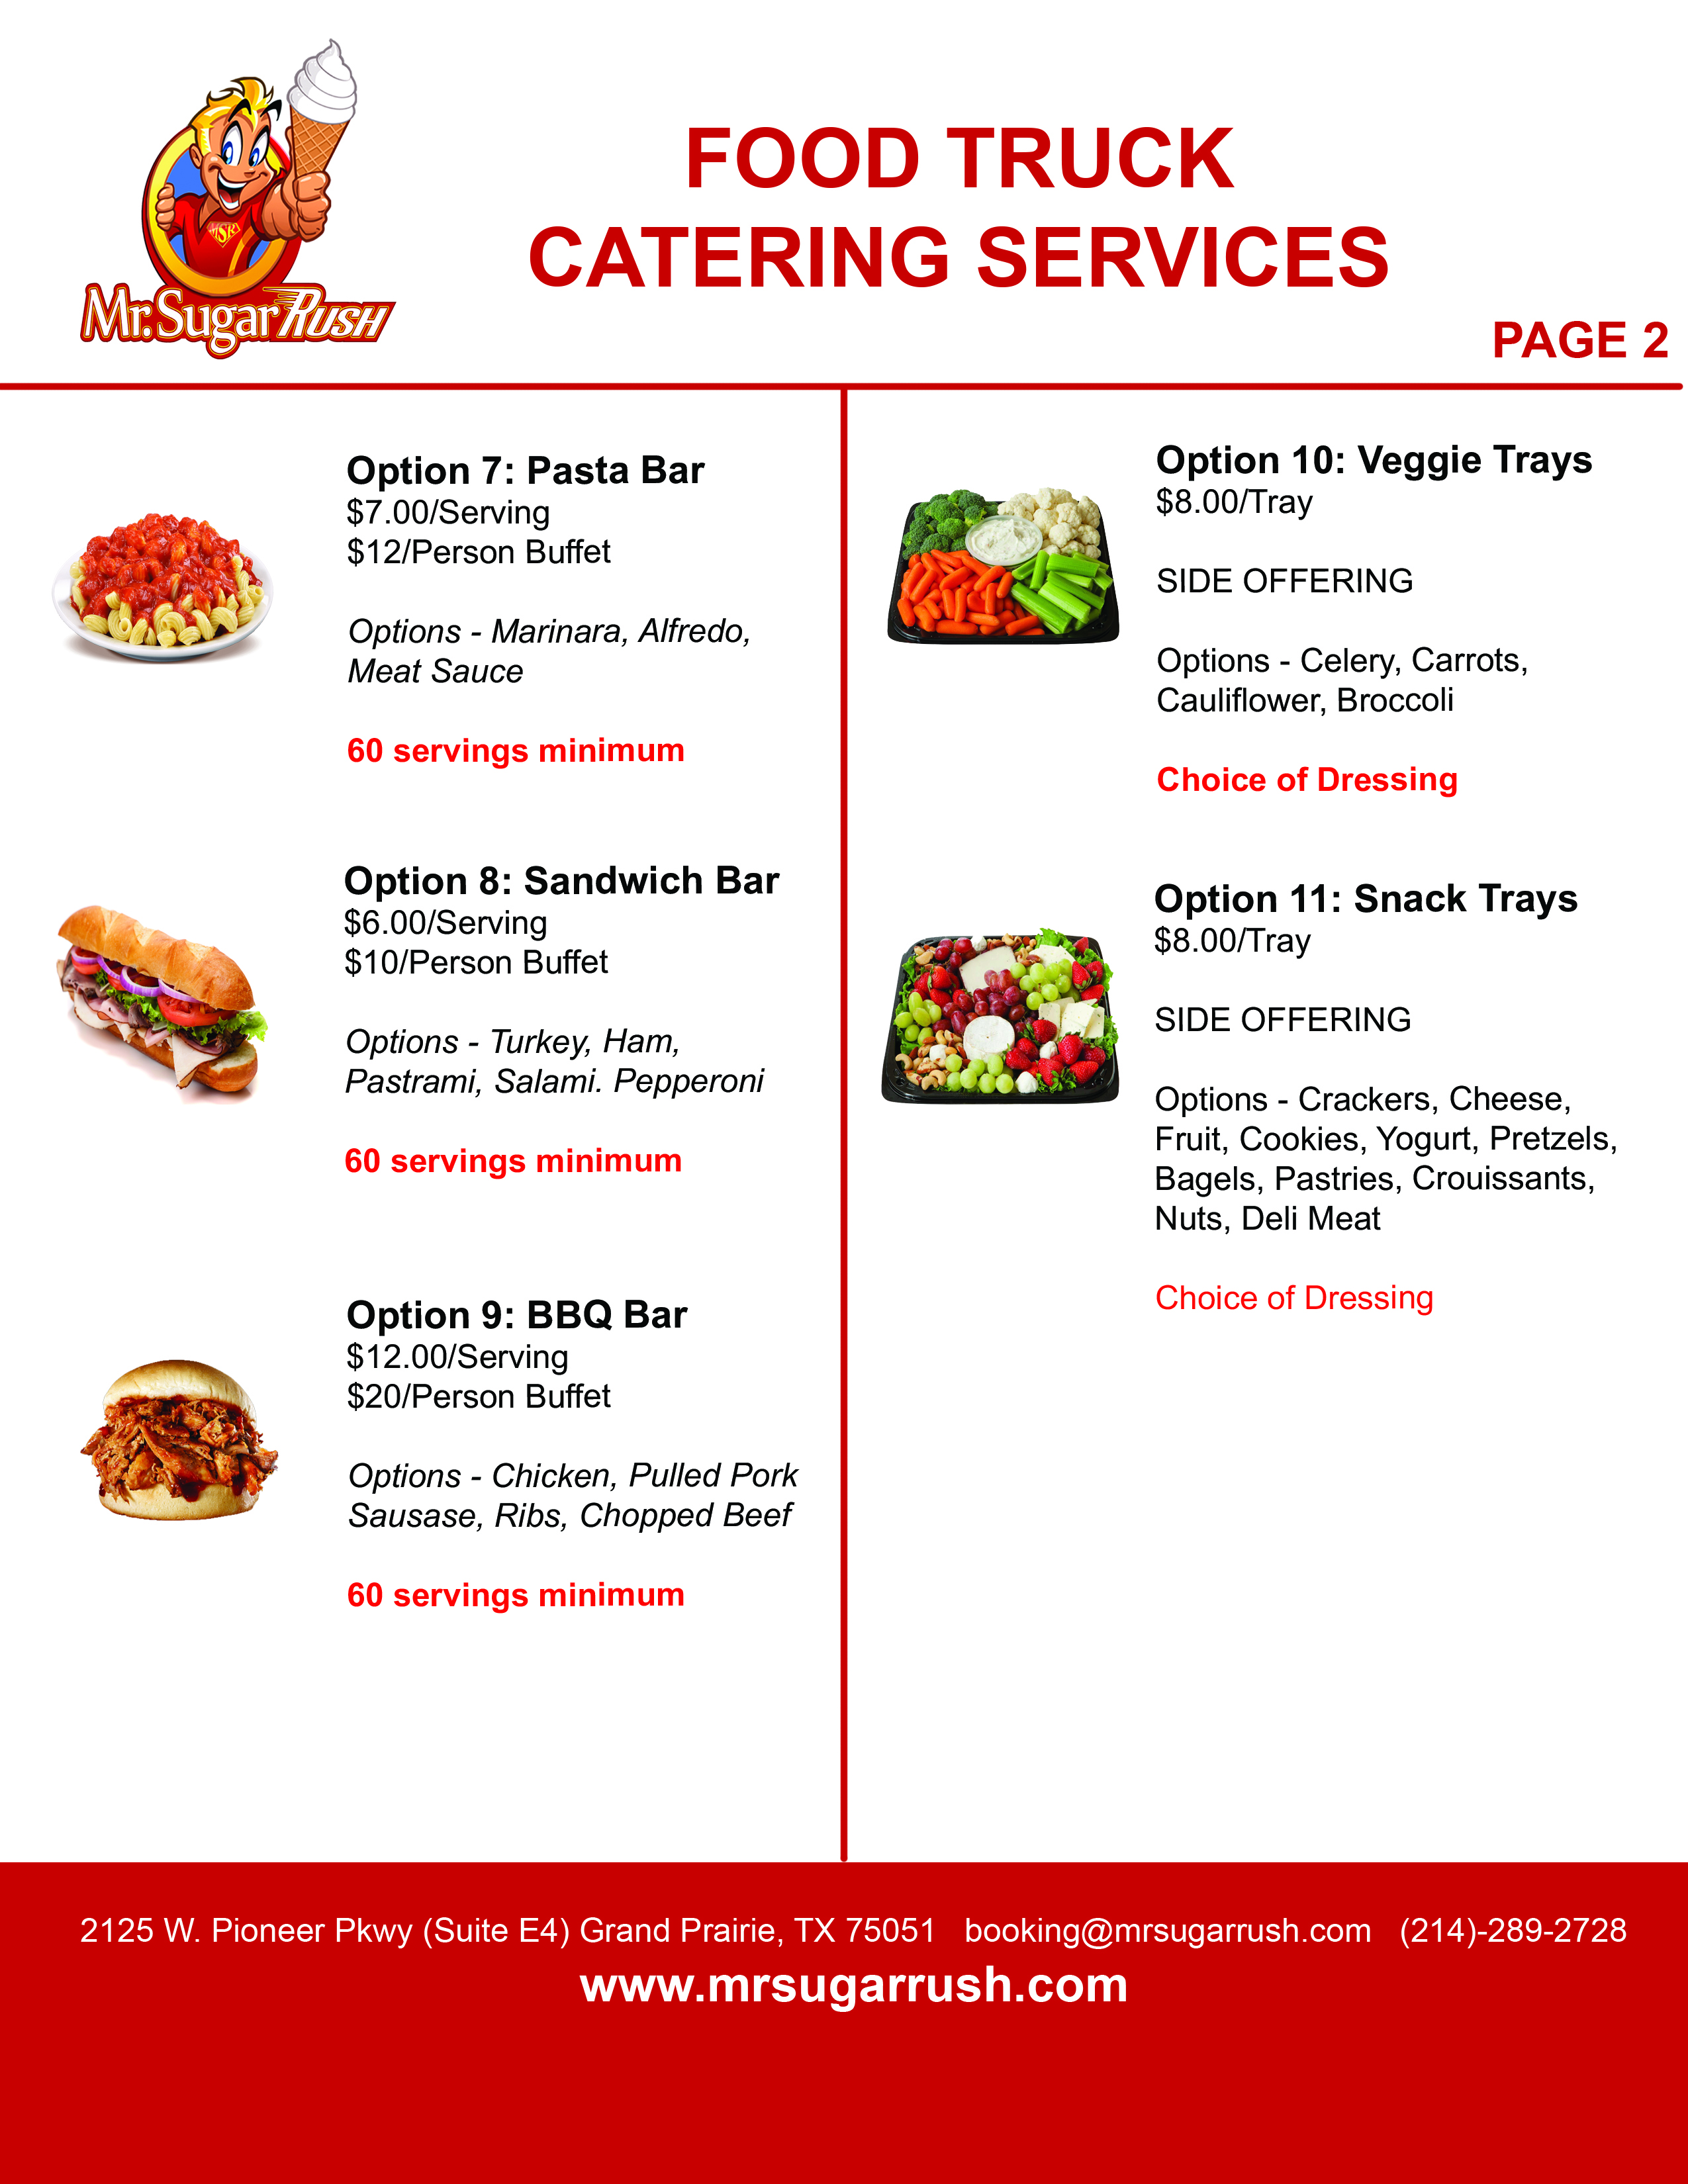 FOOD TRUCK PAGE 2 web